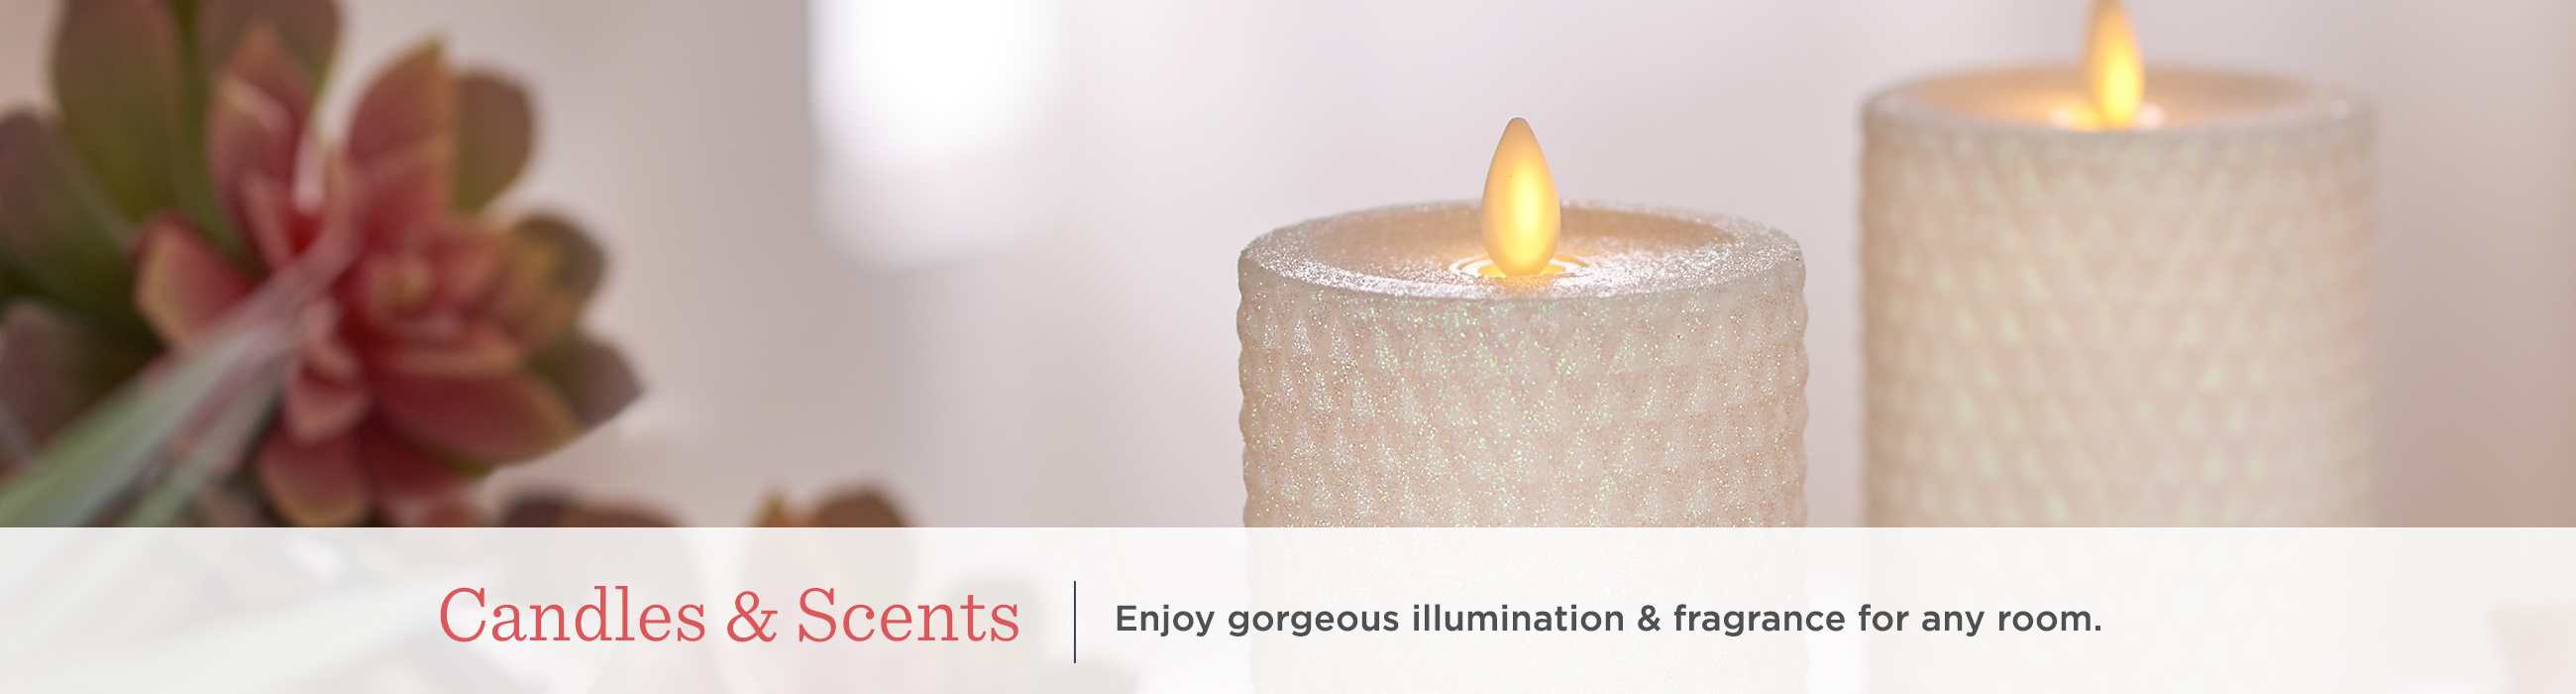 Candles & Scents - Enjoy gorgeous illumination & fragrance for any room.